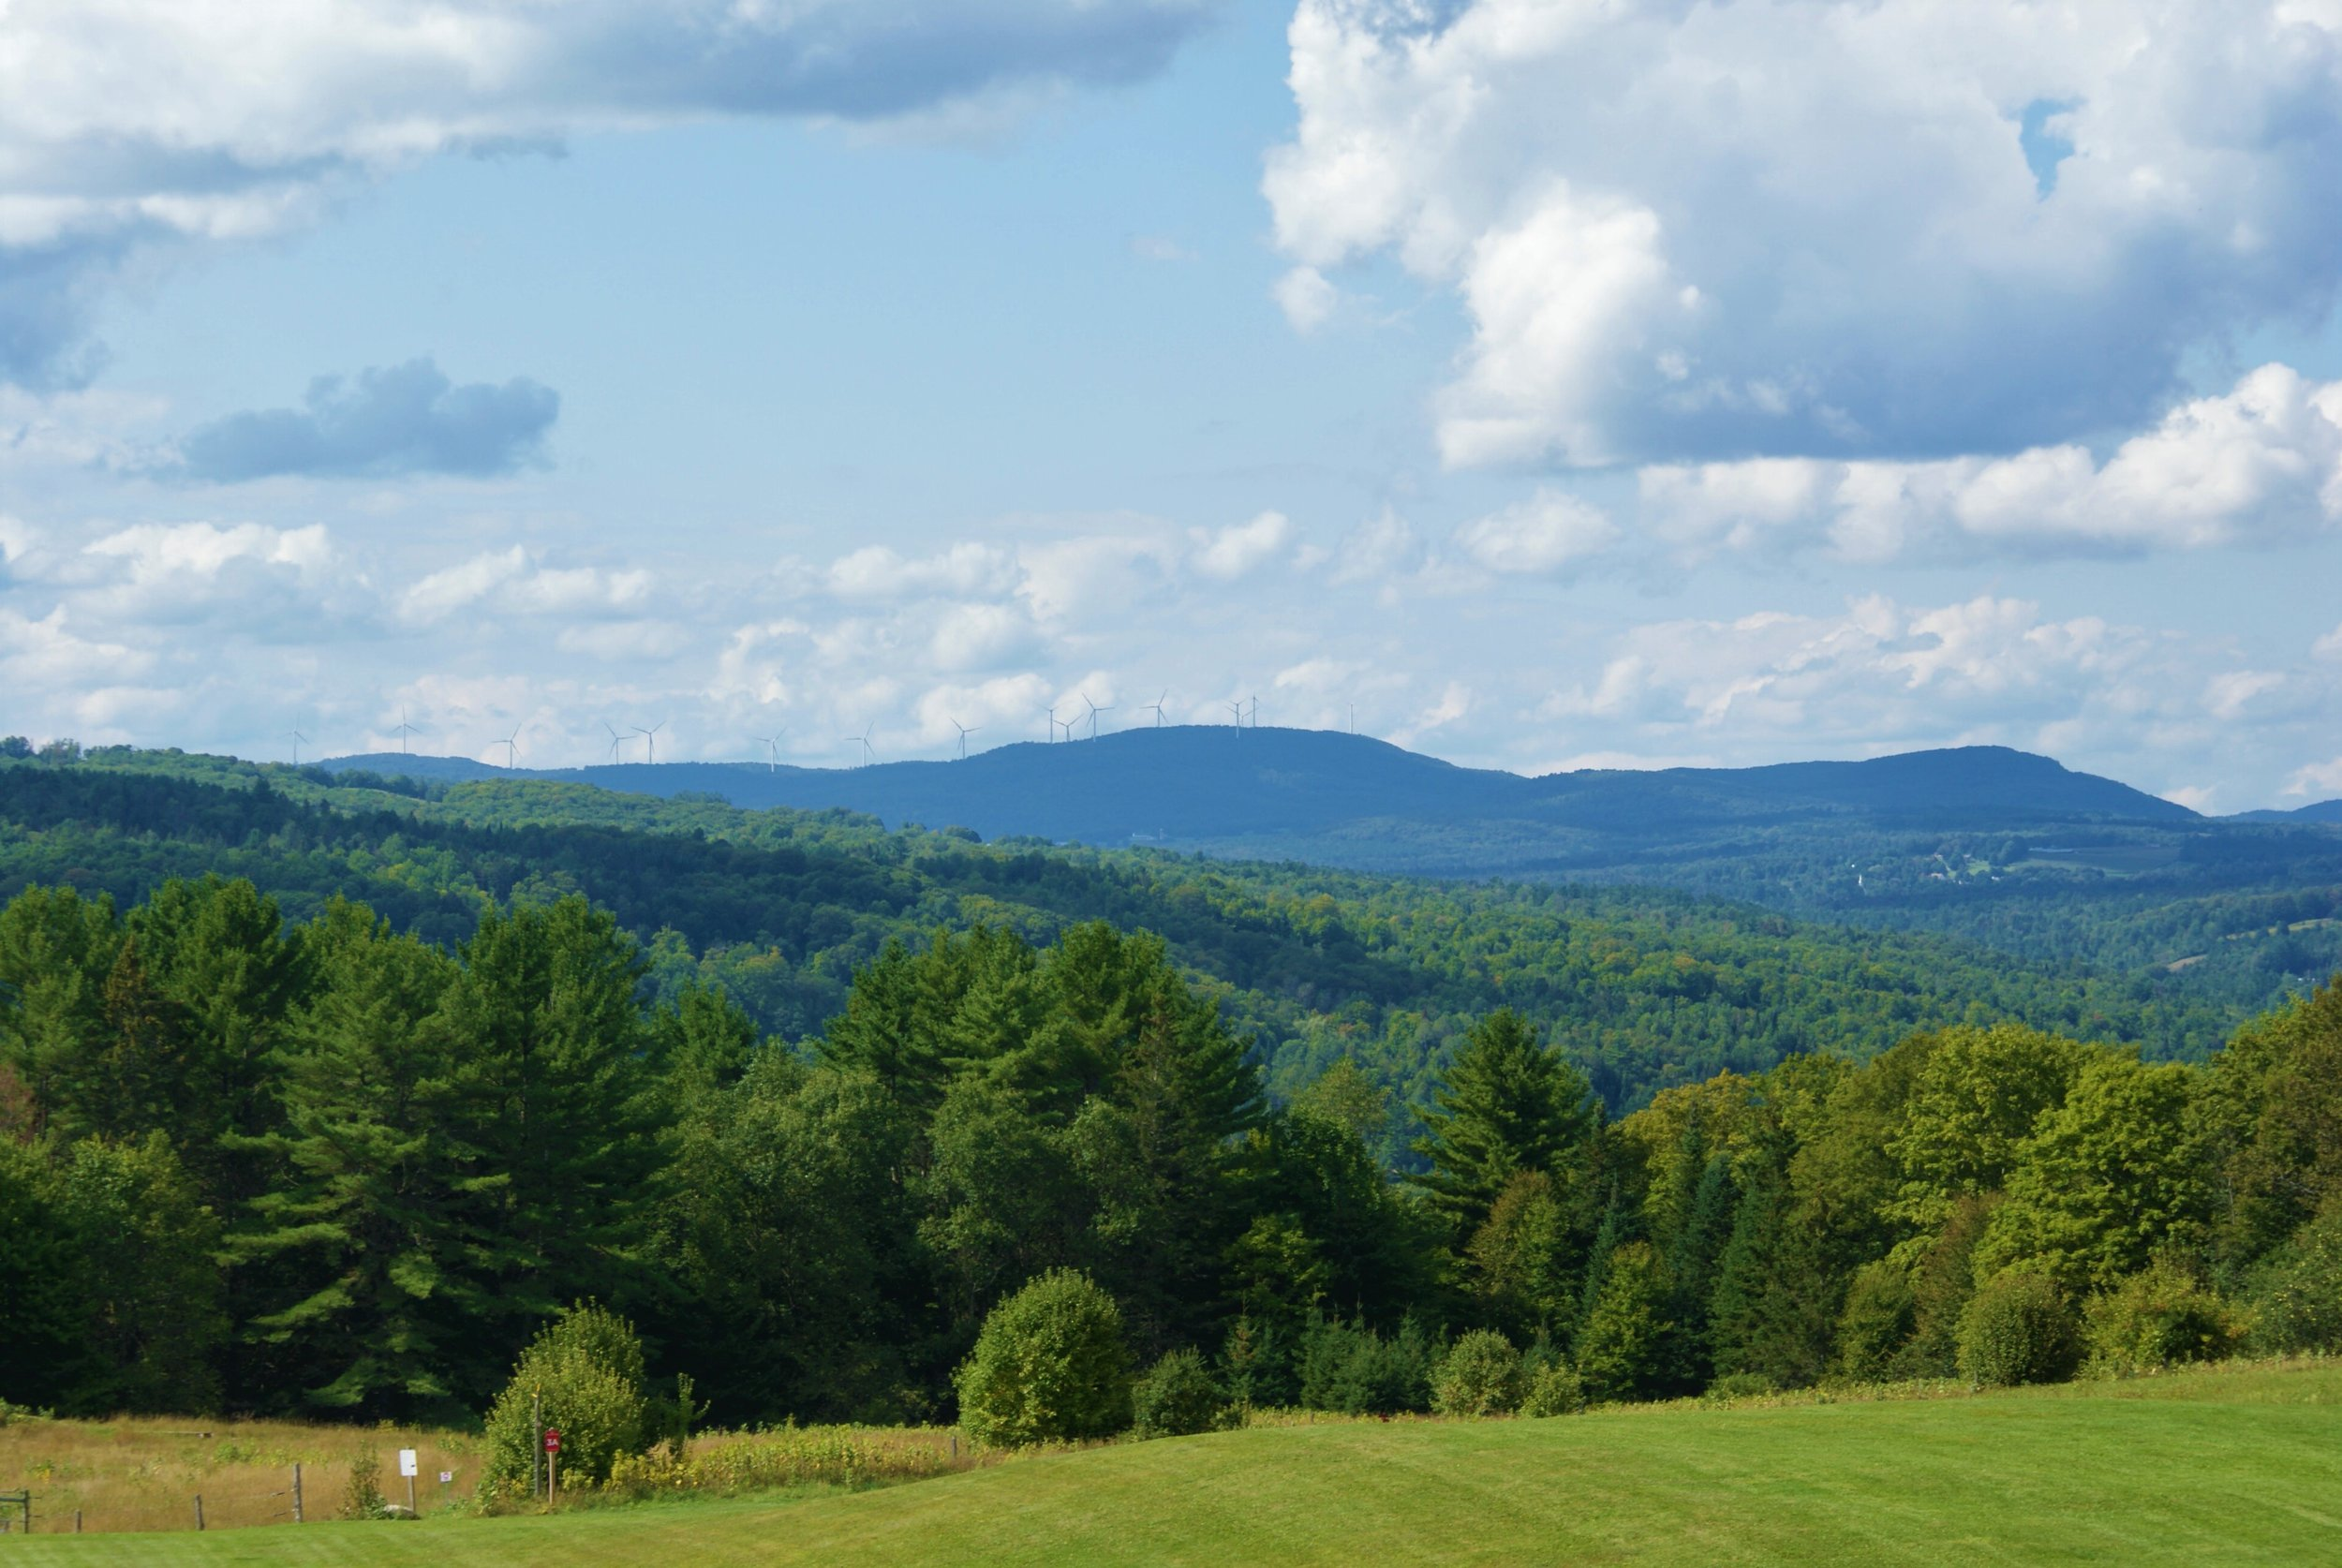 The view from Darling Hill Road, Lyndonville, Vermont.